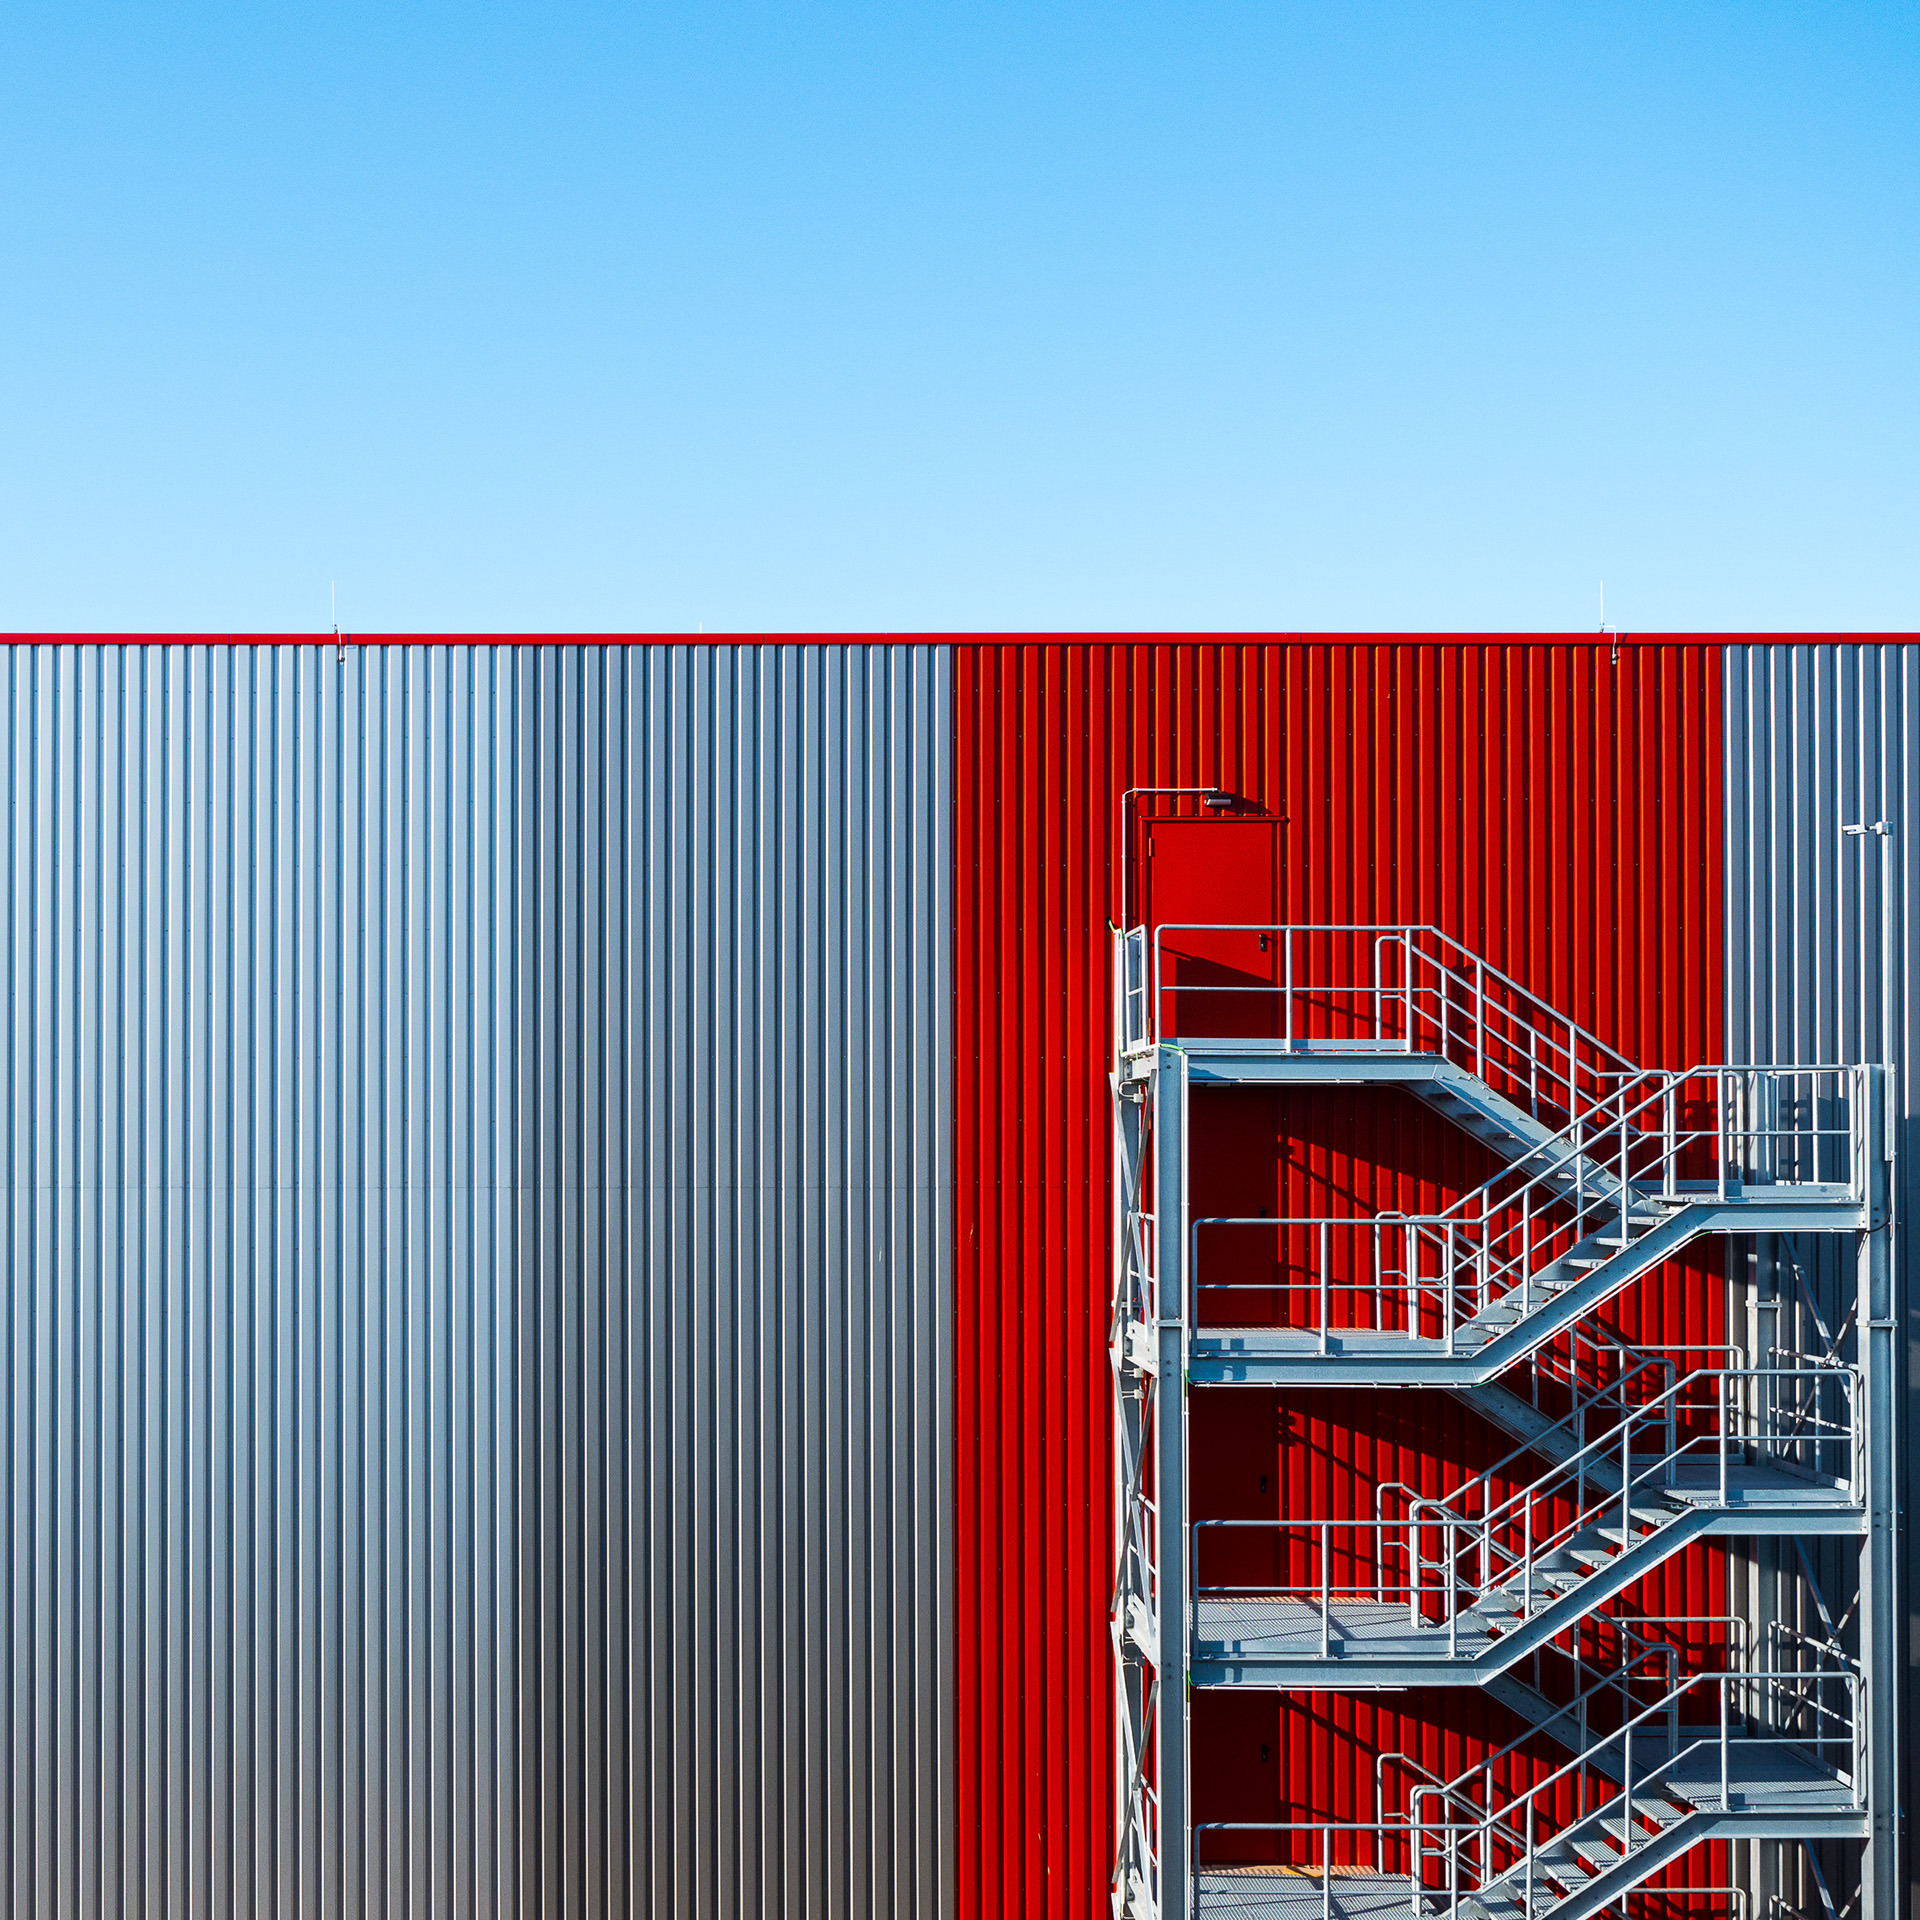 Minimal & Architecture Photography by Andreas Levers